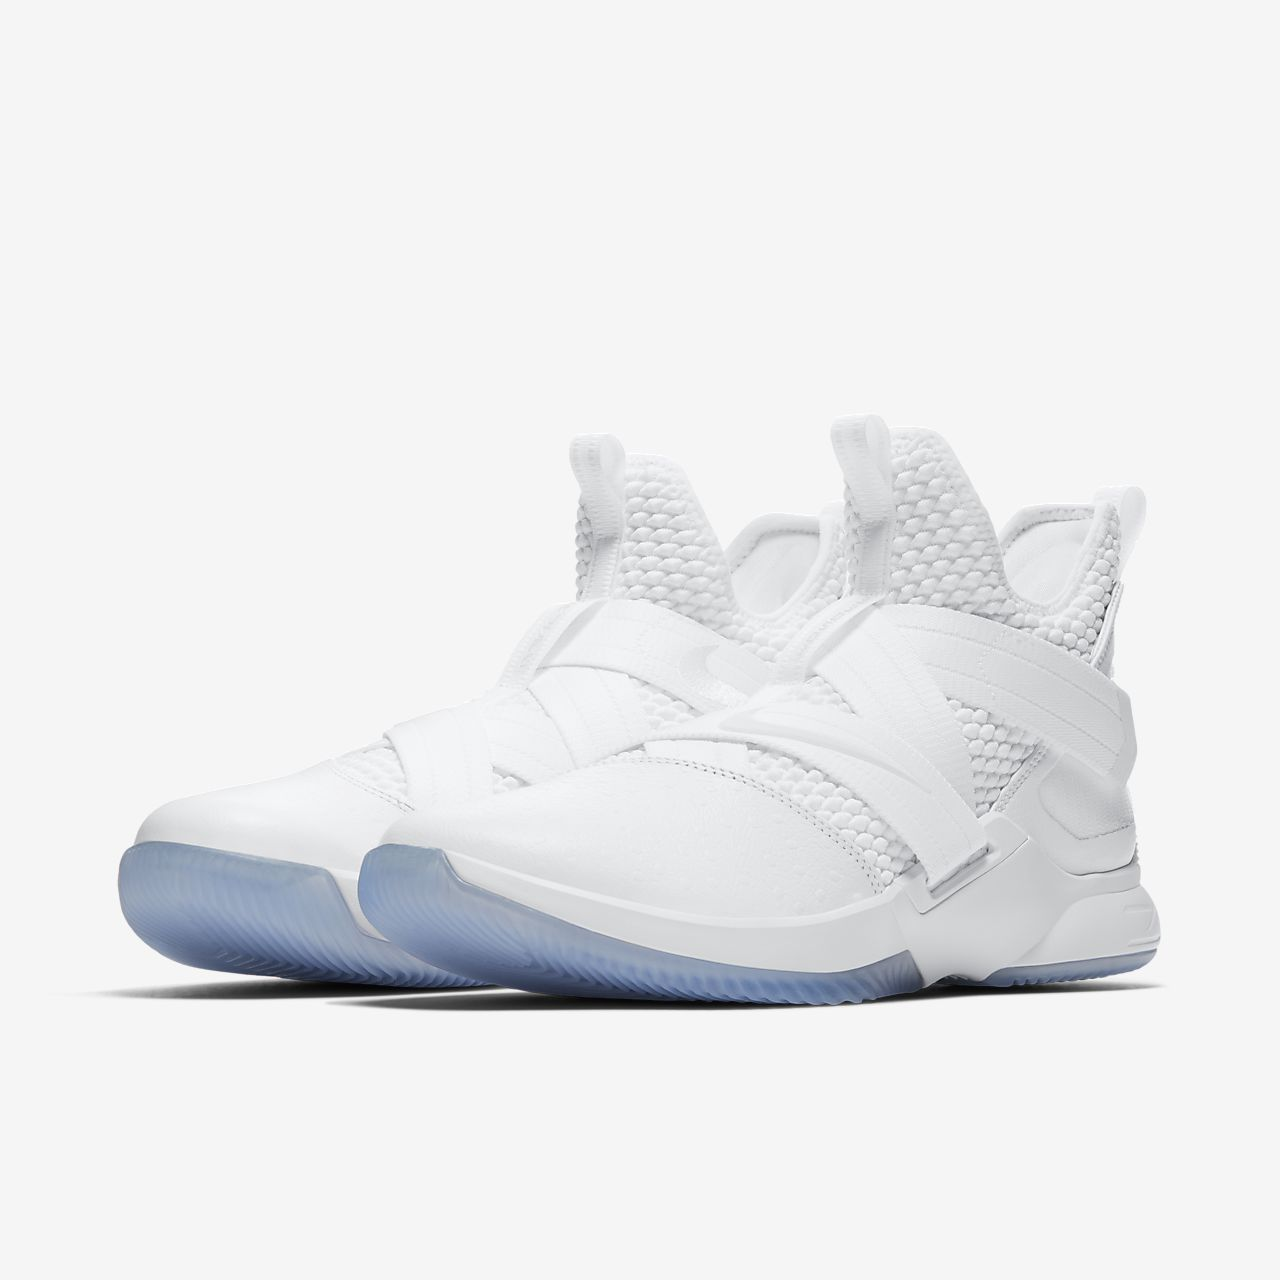 meet bd5cb cd618 Chaussure de basketball LeBron Soldier 12 SFG. Nike.com FR